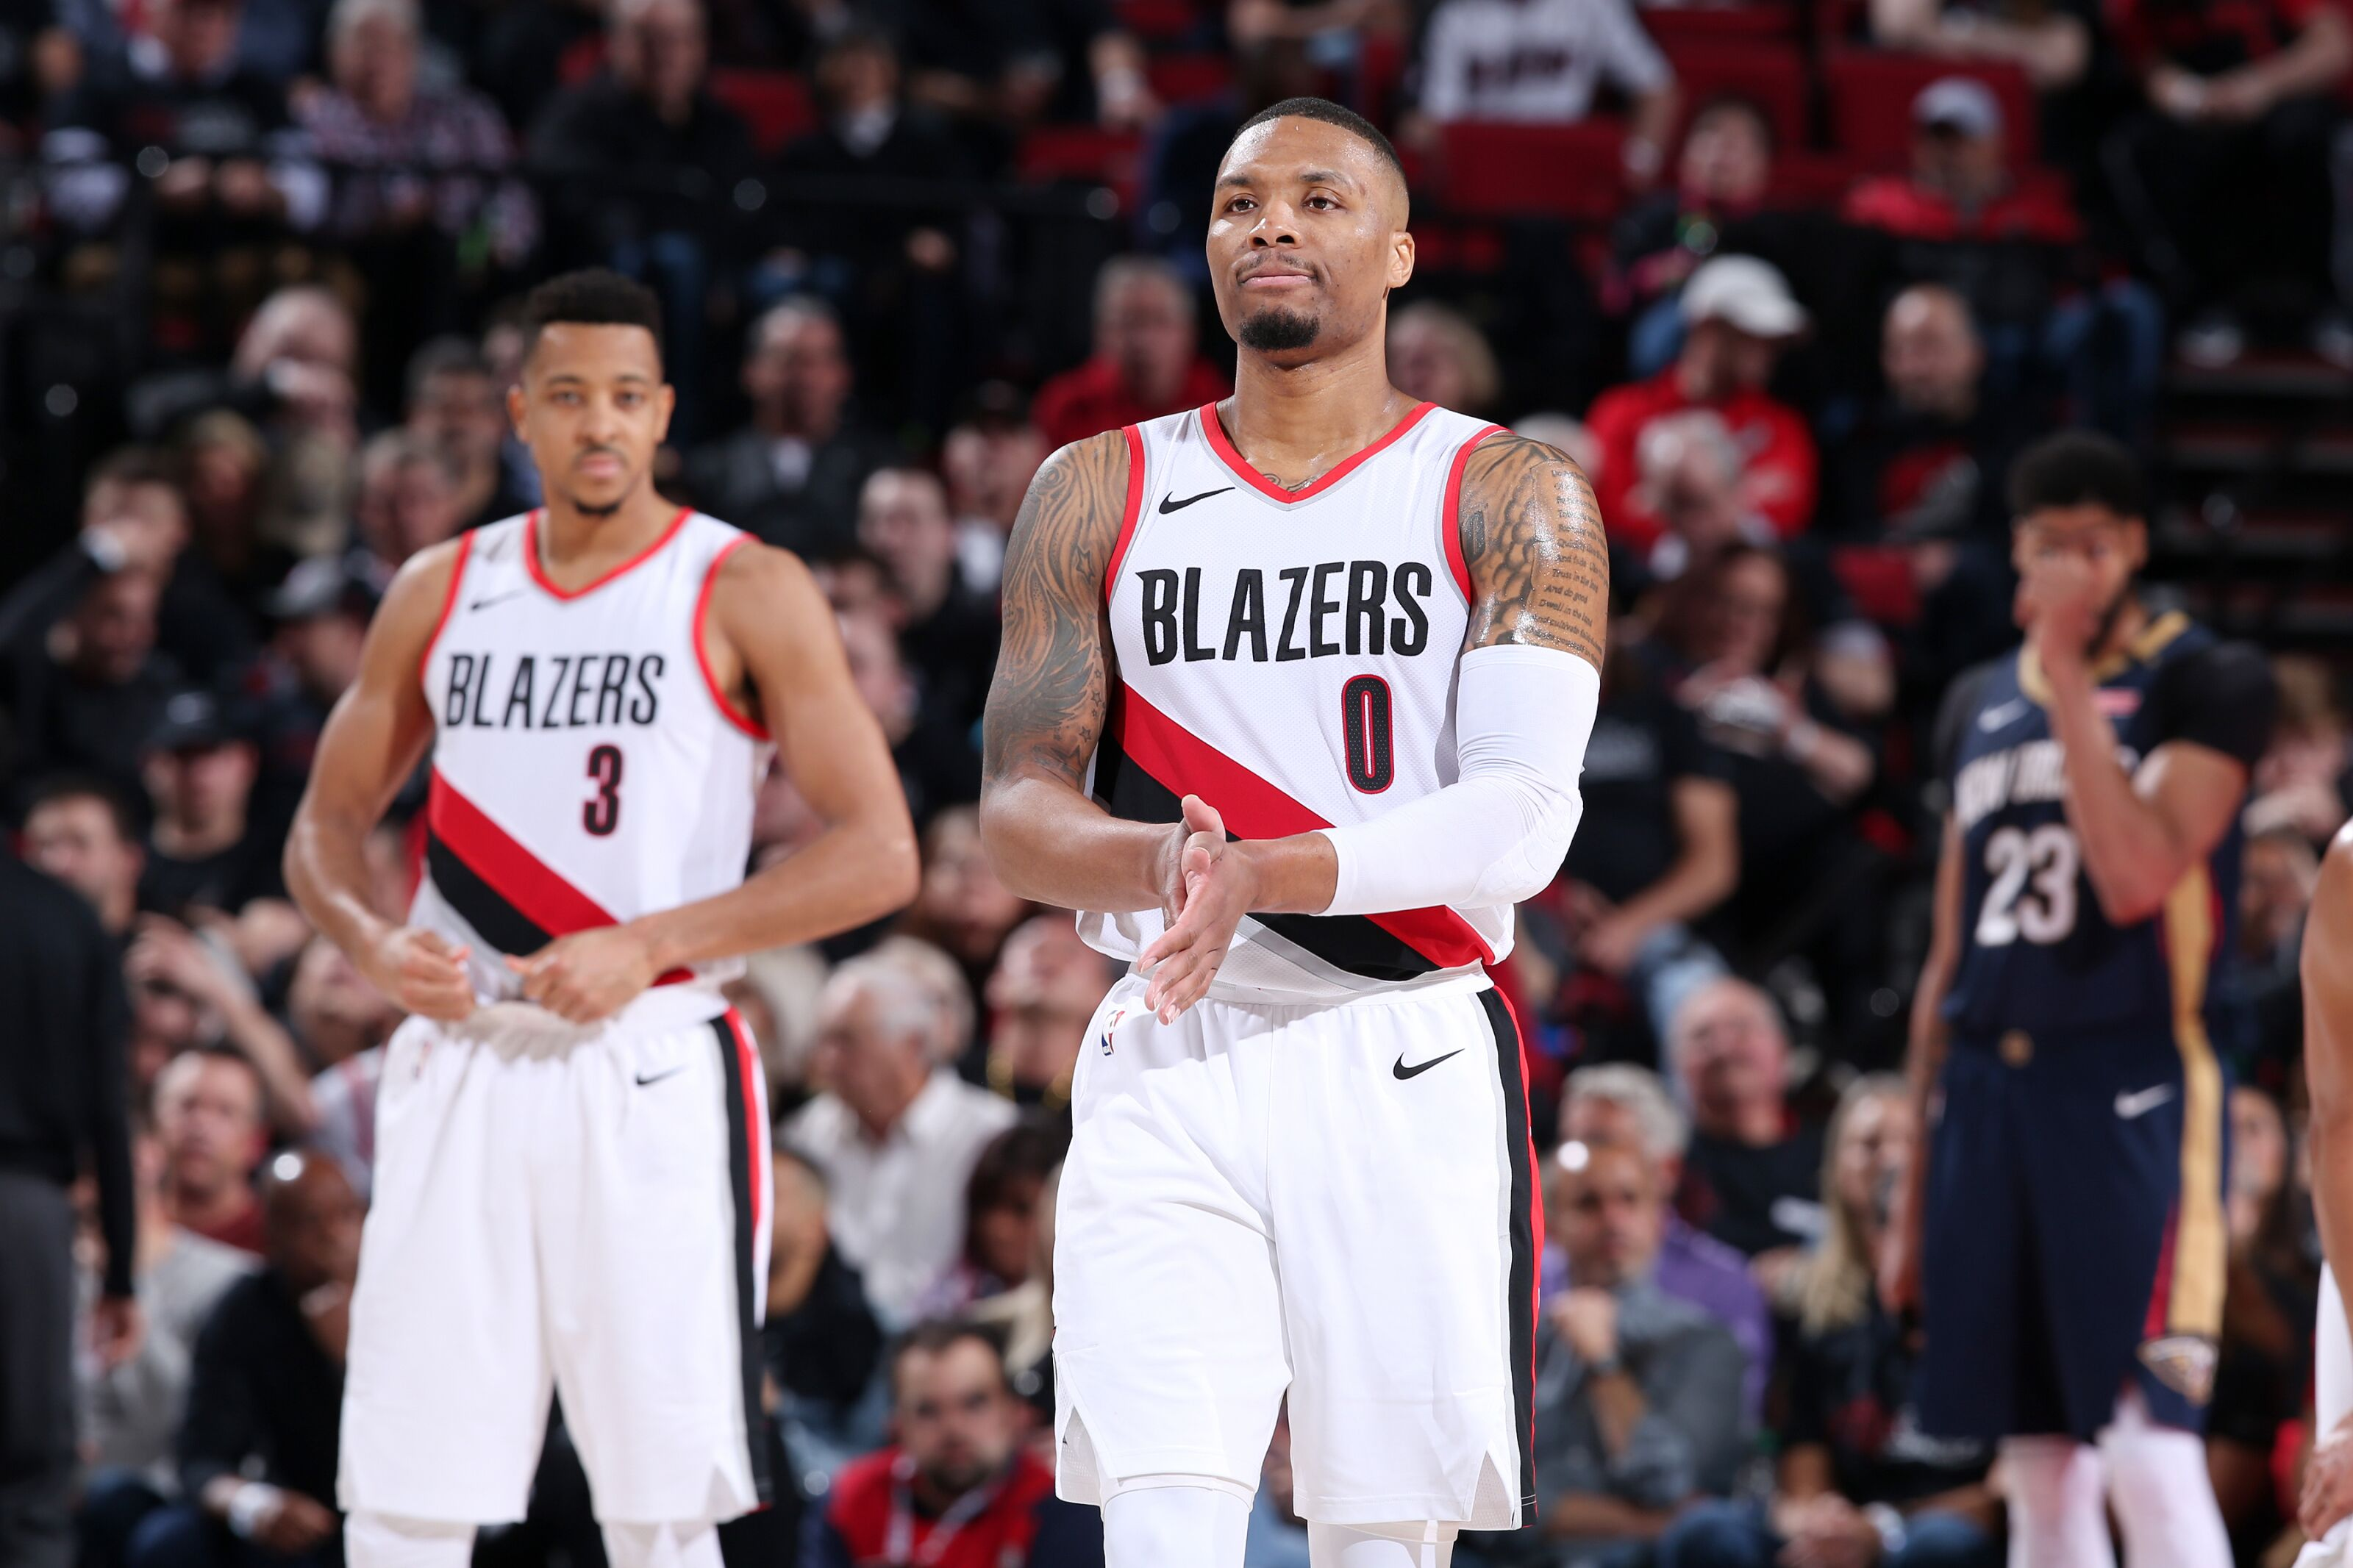 Portland Trail Blazers 3 Takeaways From Game 1 Vs. Pelicans - Page 2